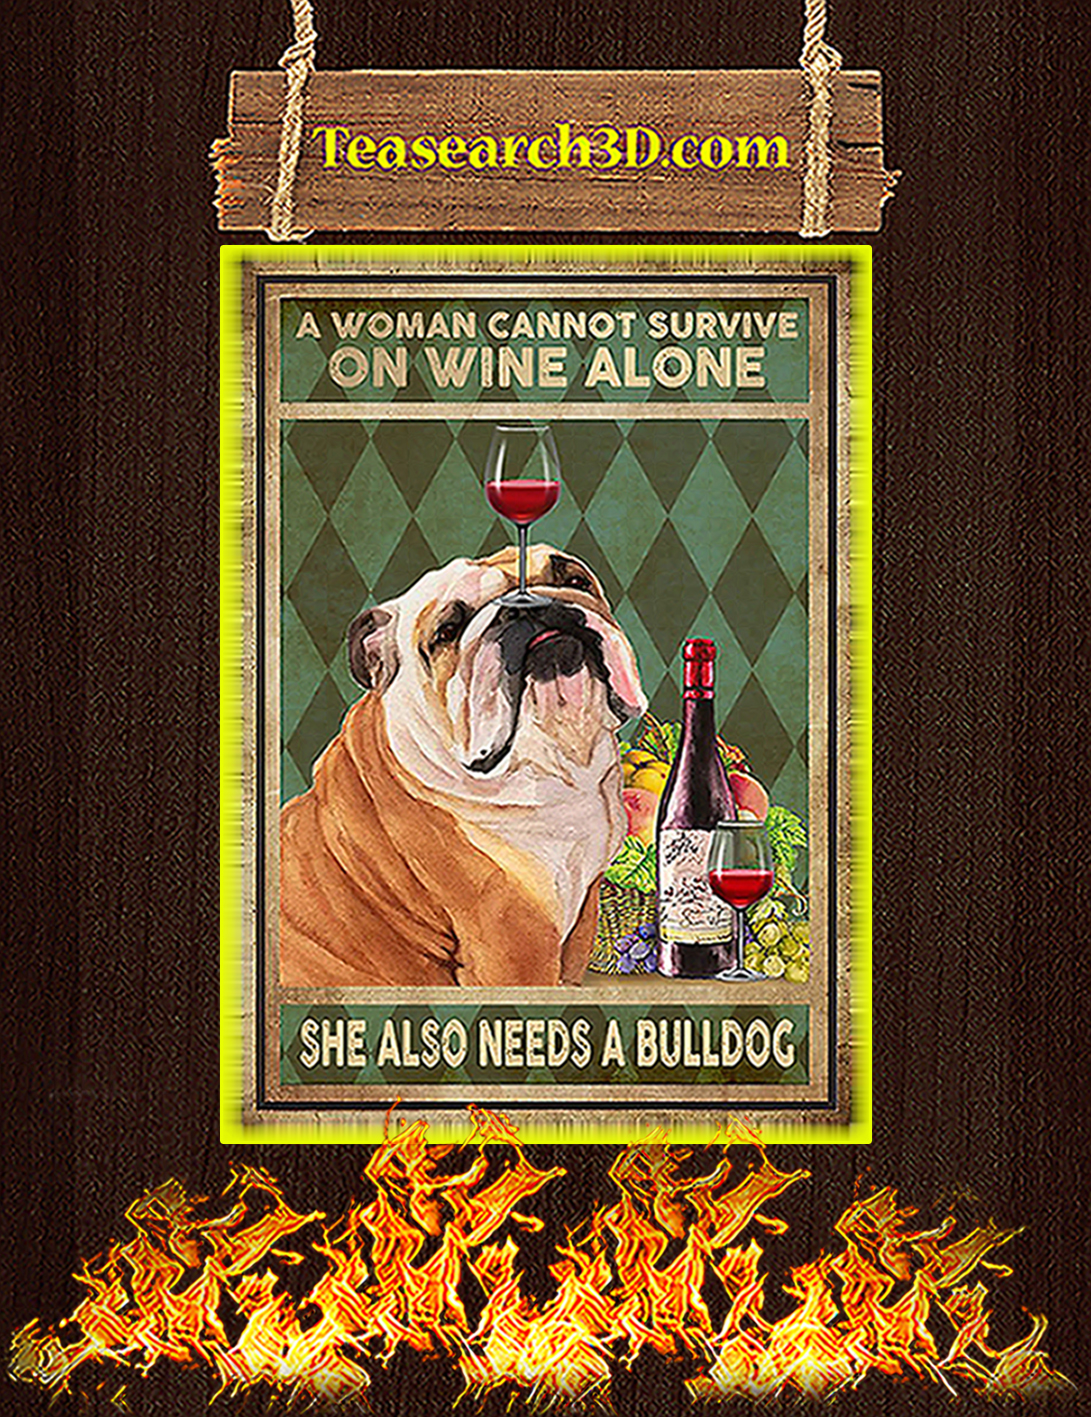 A woman cannot survive on wine alone she also needs a bulldog poster A2